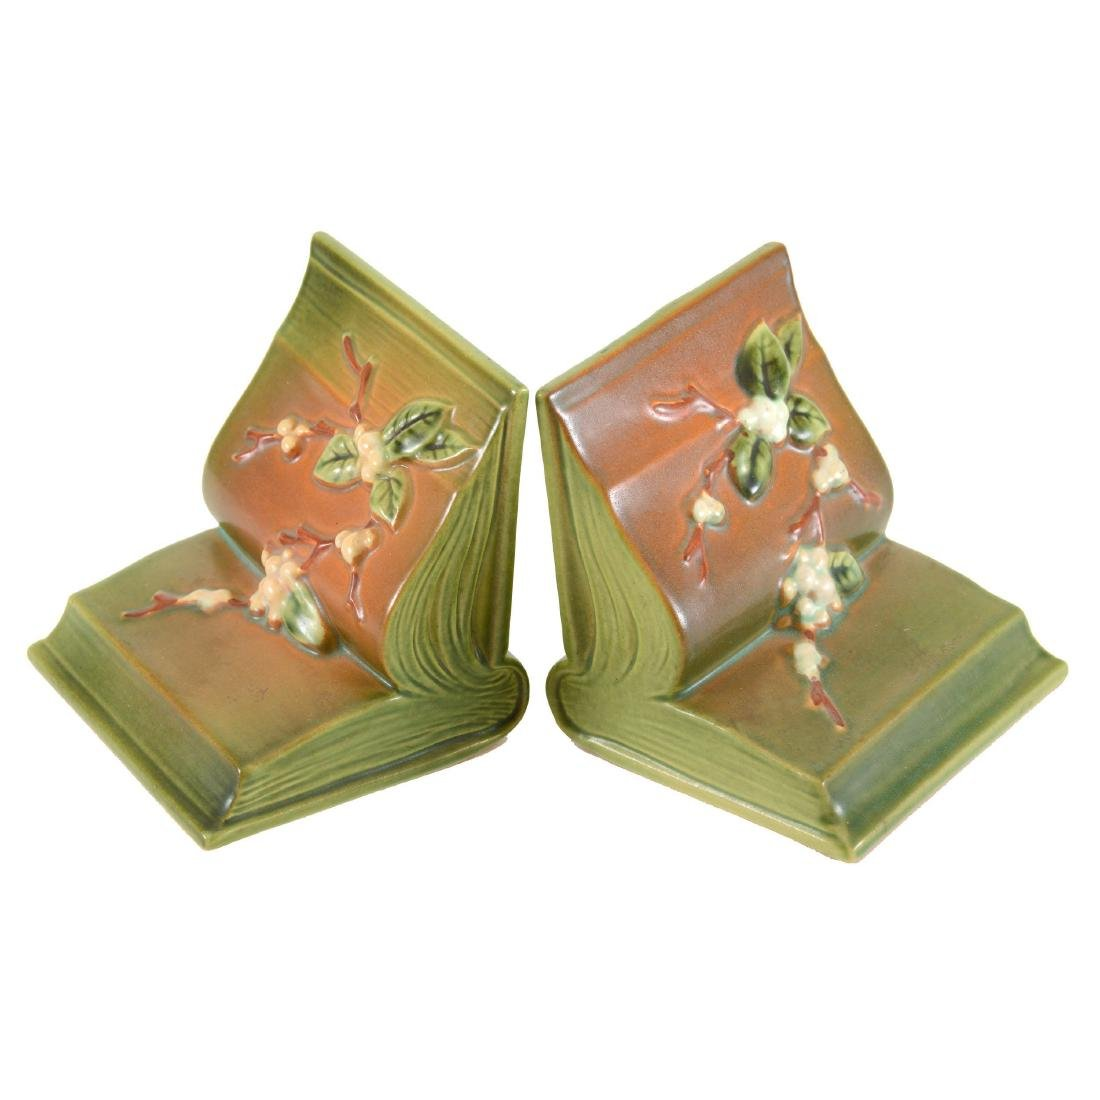 Roseville Art Pottery Bookends